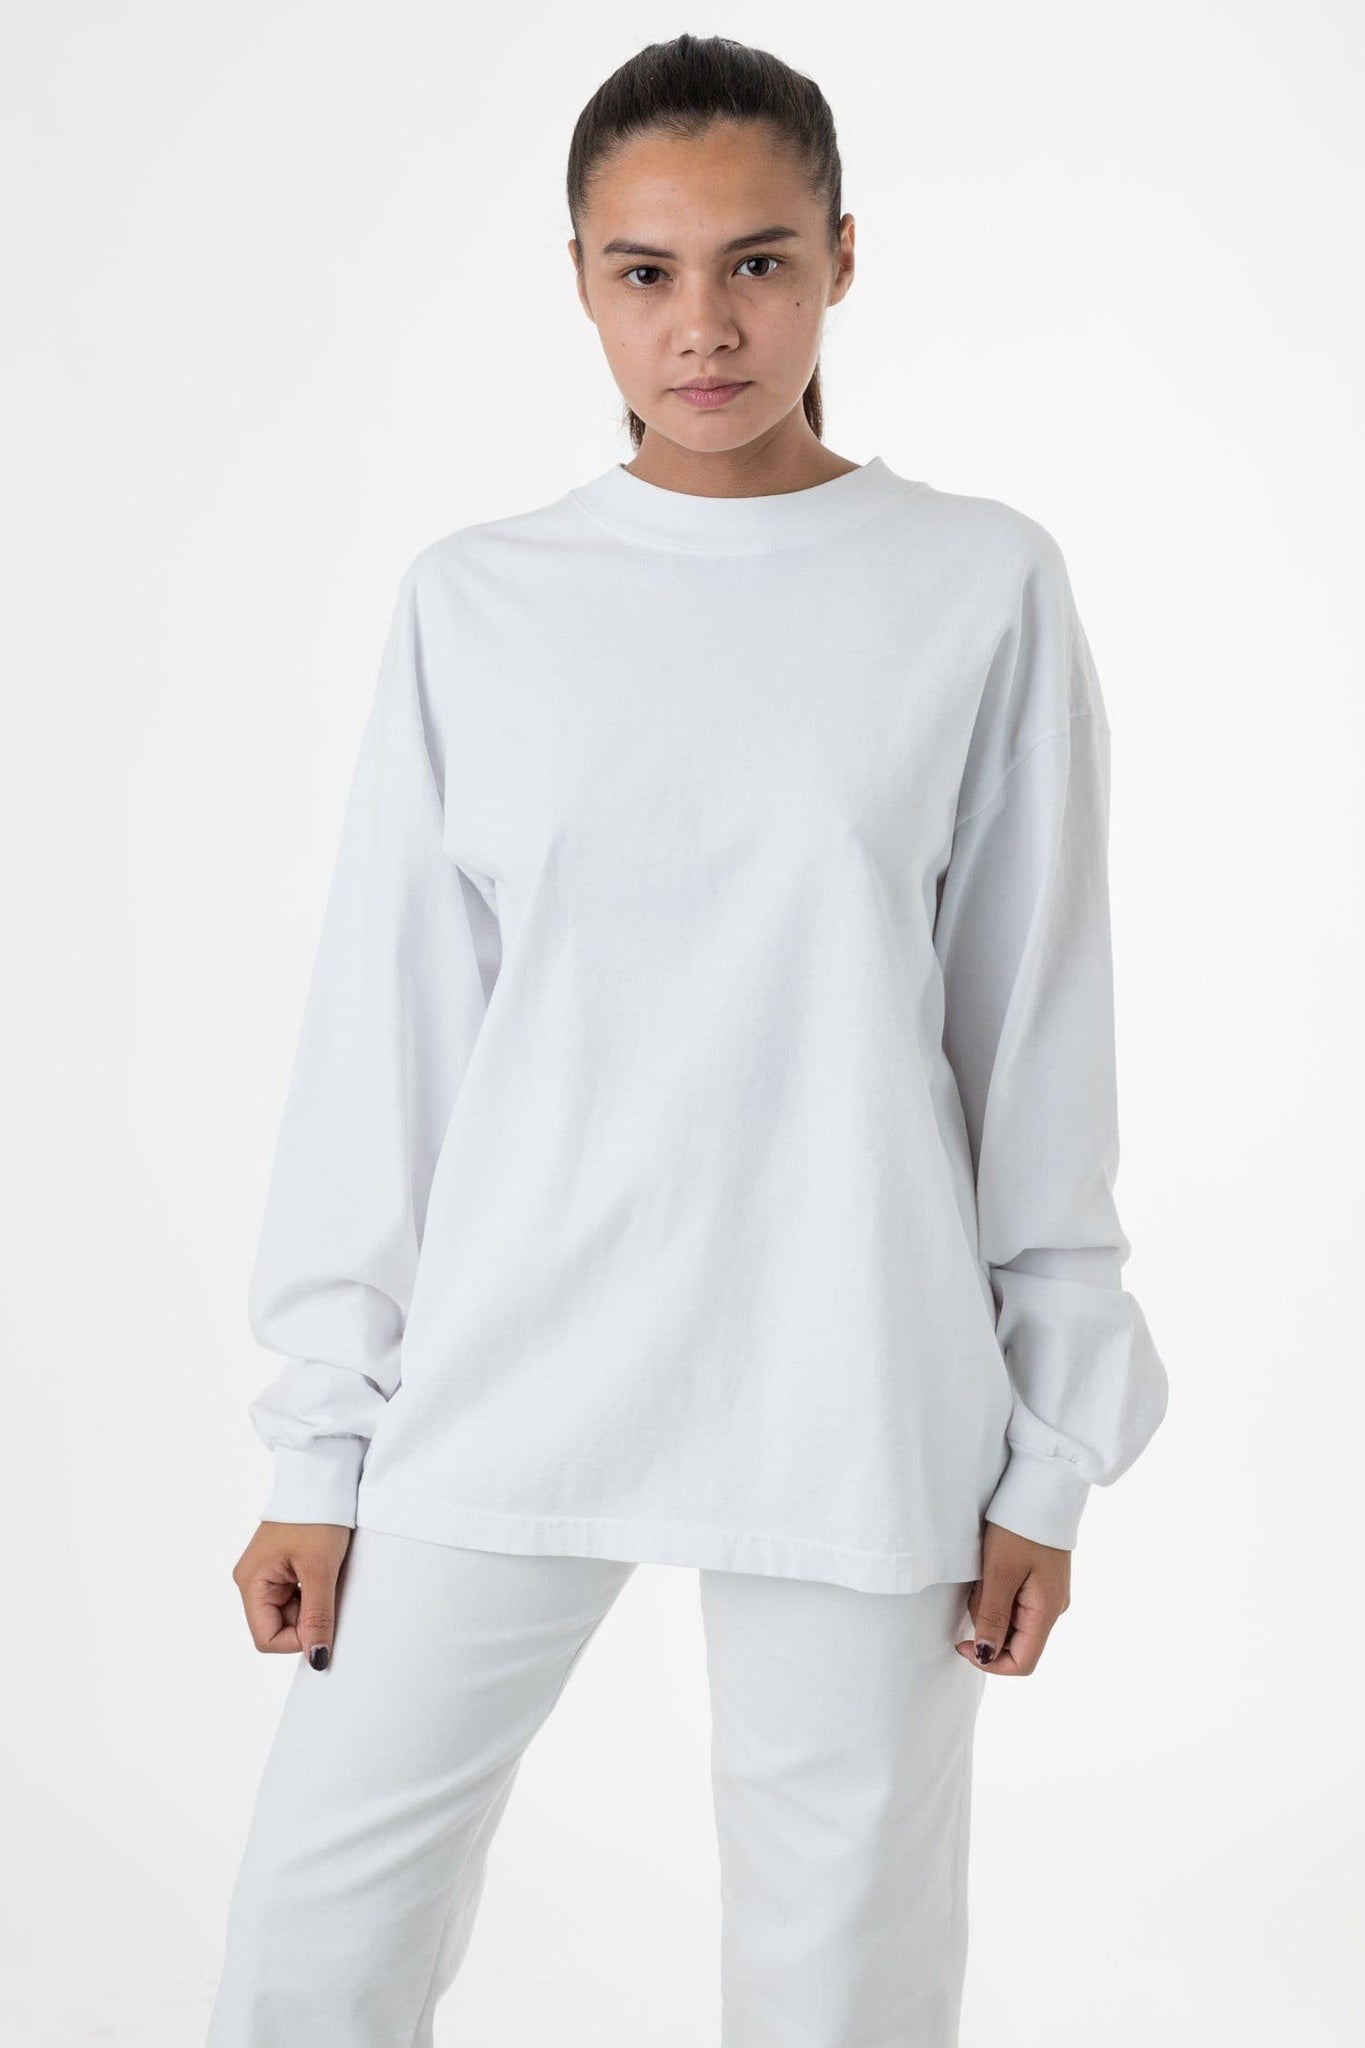 1406GD Mix - Long Sleeve Garment Dye Mockneck T-Shirt